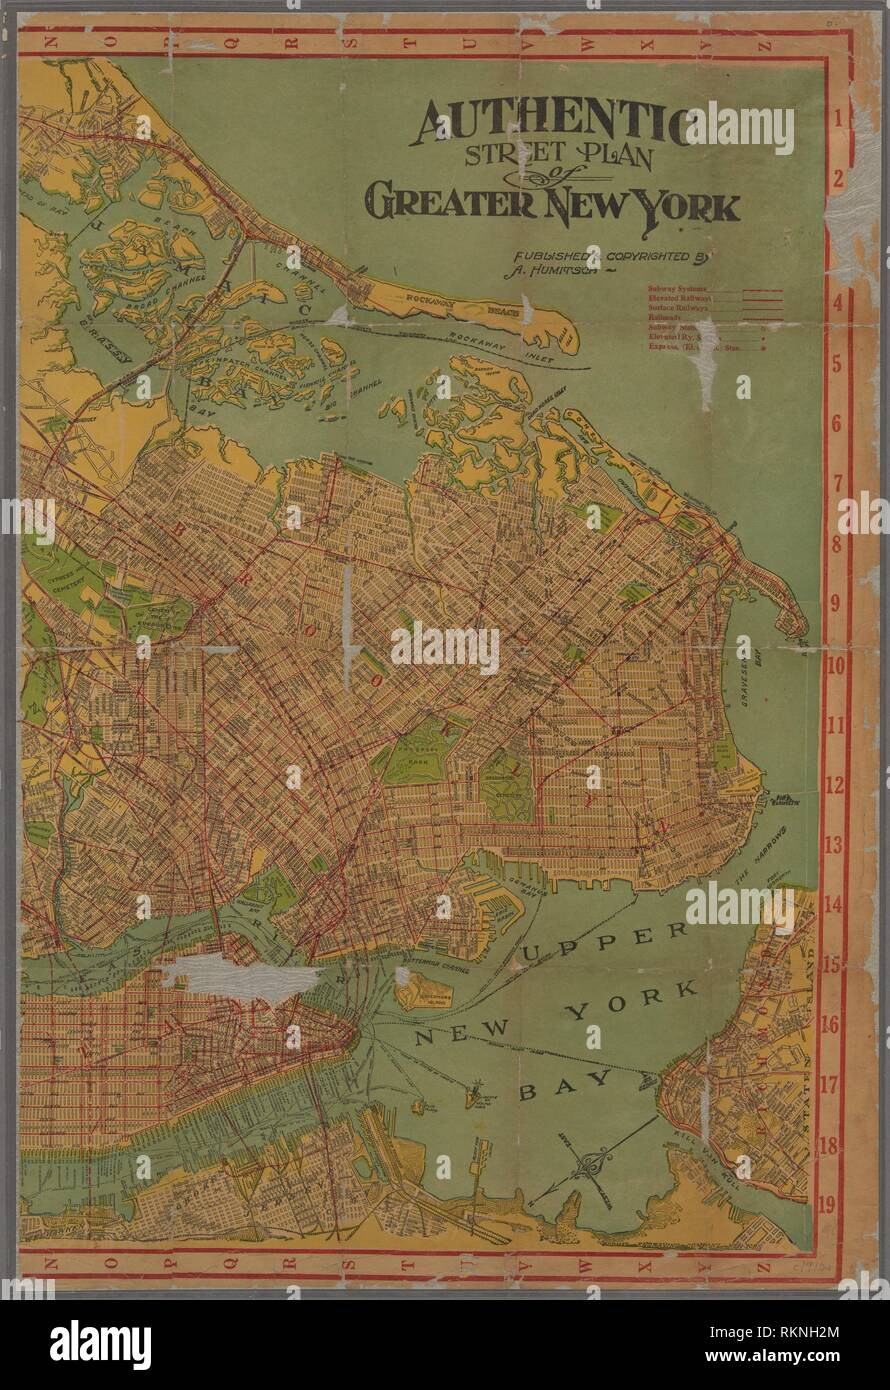 Map Of Greater New York City Area.Authentic Street Plan Of Greater New York Maps Of New York City And